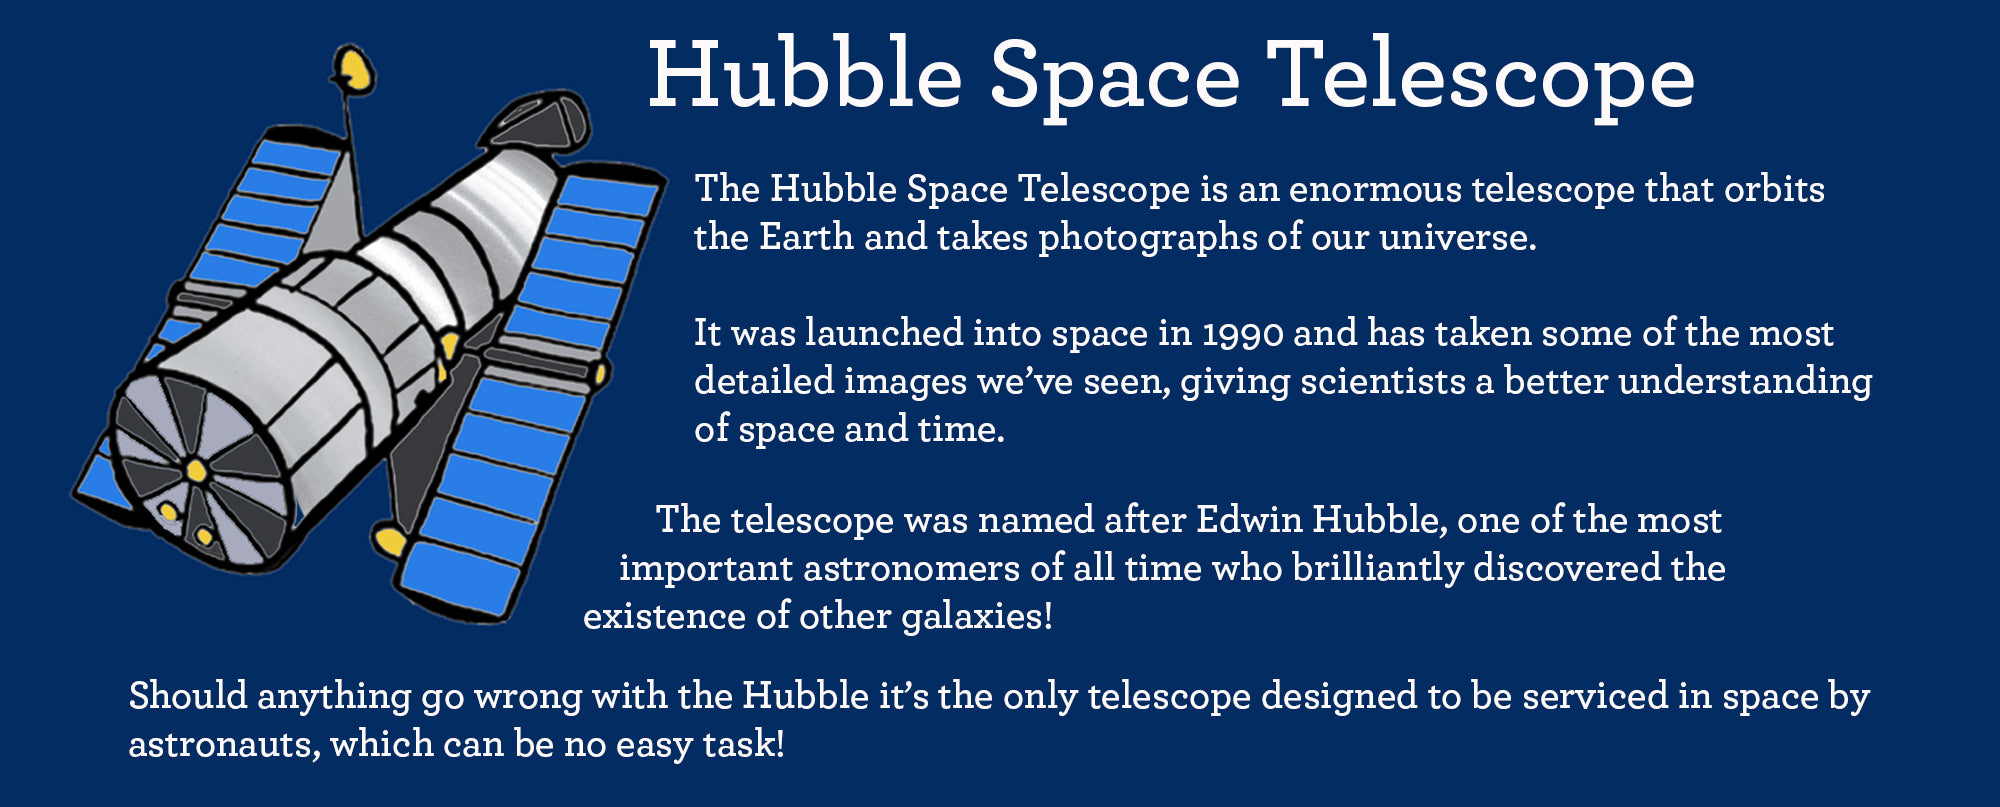 facts about hubble space telescope